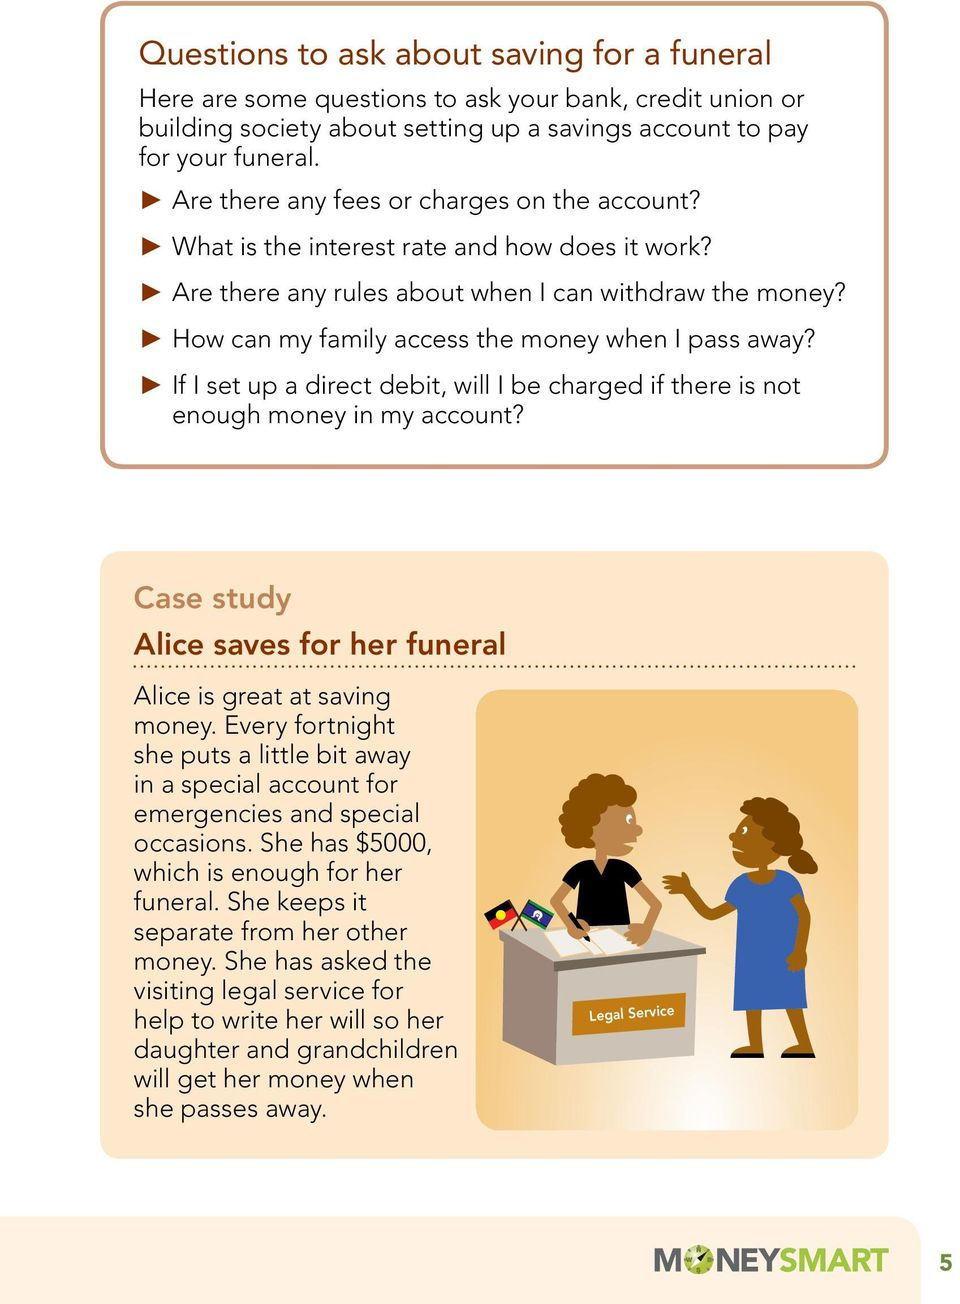 How can my family access the money when I pass away? If I set up a direct debit, will I be charged if there is not enough money in my account?